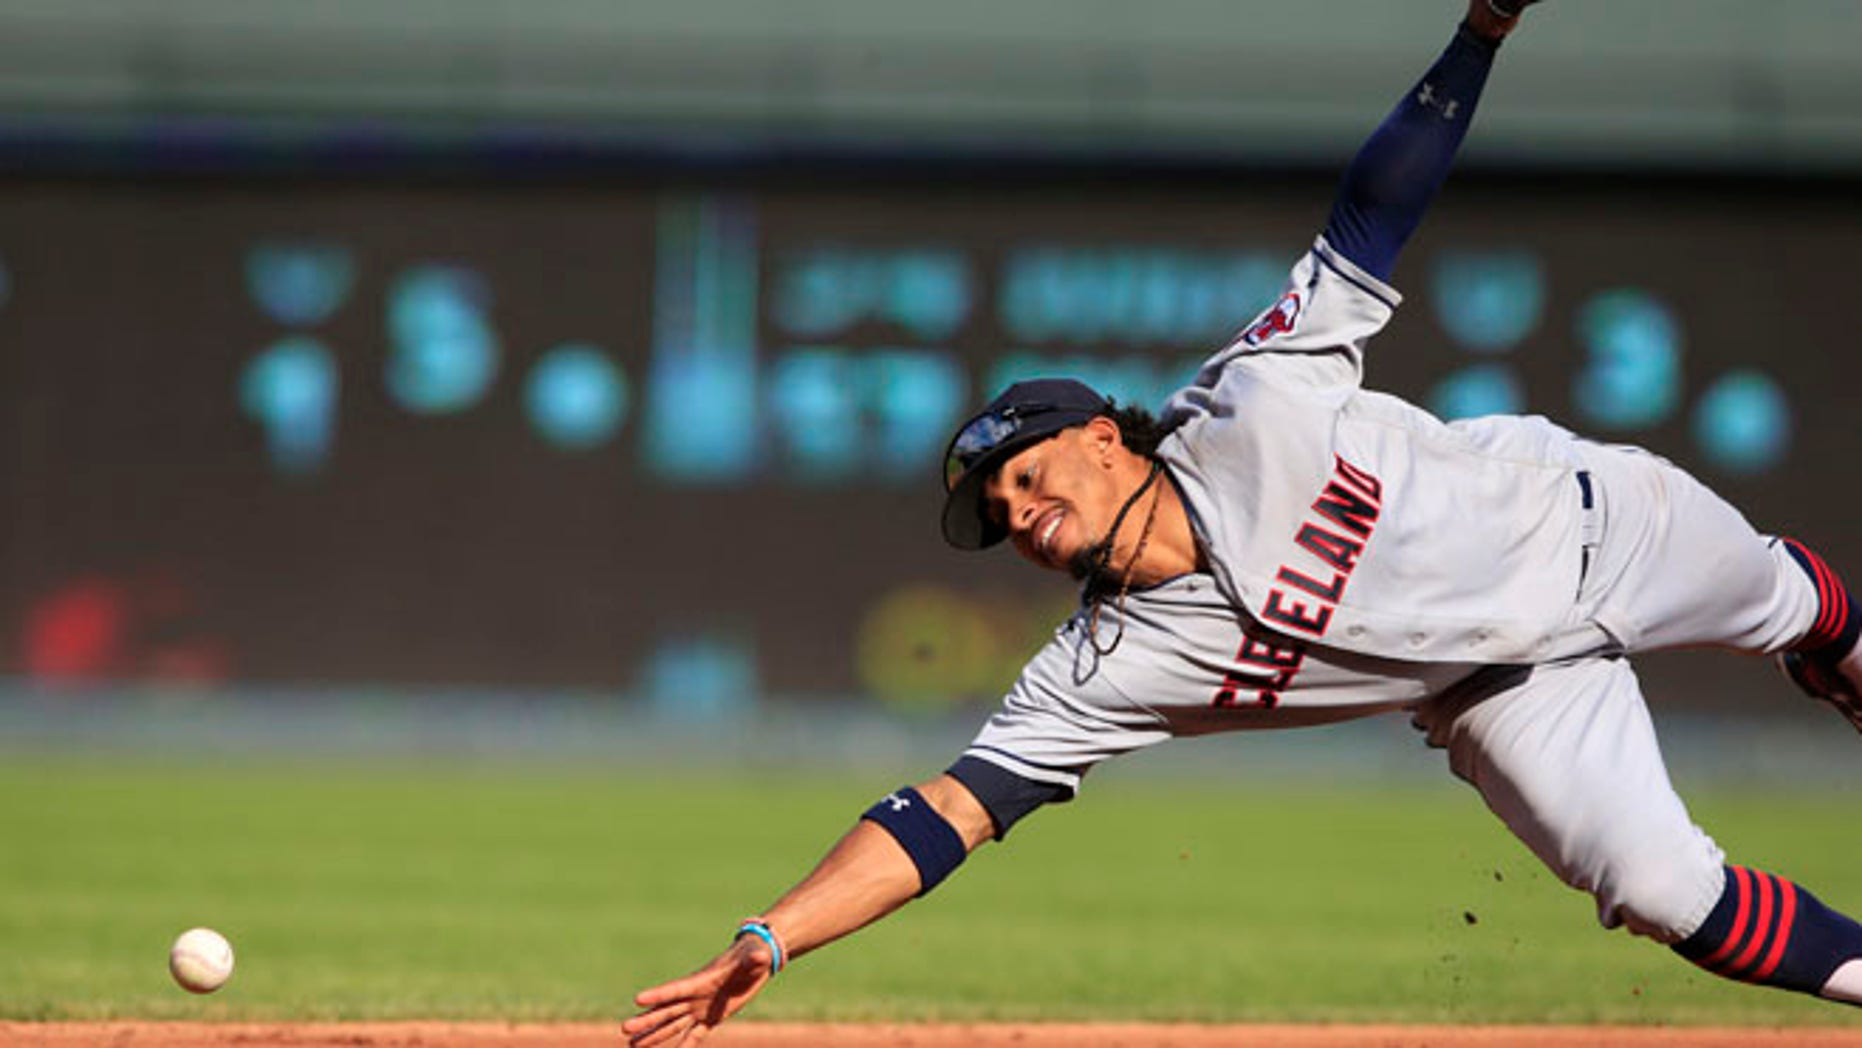 FILE - In this Oct. 1, 2016, file photo, Cleveland Indians shortstop Francisco Lindor dives for a ground ball hit by Kansas City Royals' Drew Butera during a baseball game at Kauffman Stadium in Kansas City, Mo. Lindor won a Gold Glove award, announced Tuesday, Nov. 8, by Rawlings. He is a first-time winner. (AP Photo/Orlin Wagner, File)